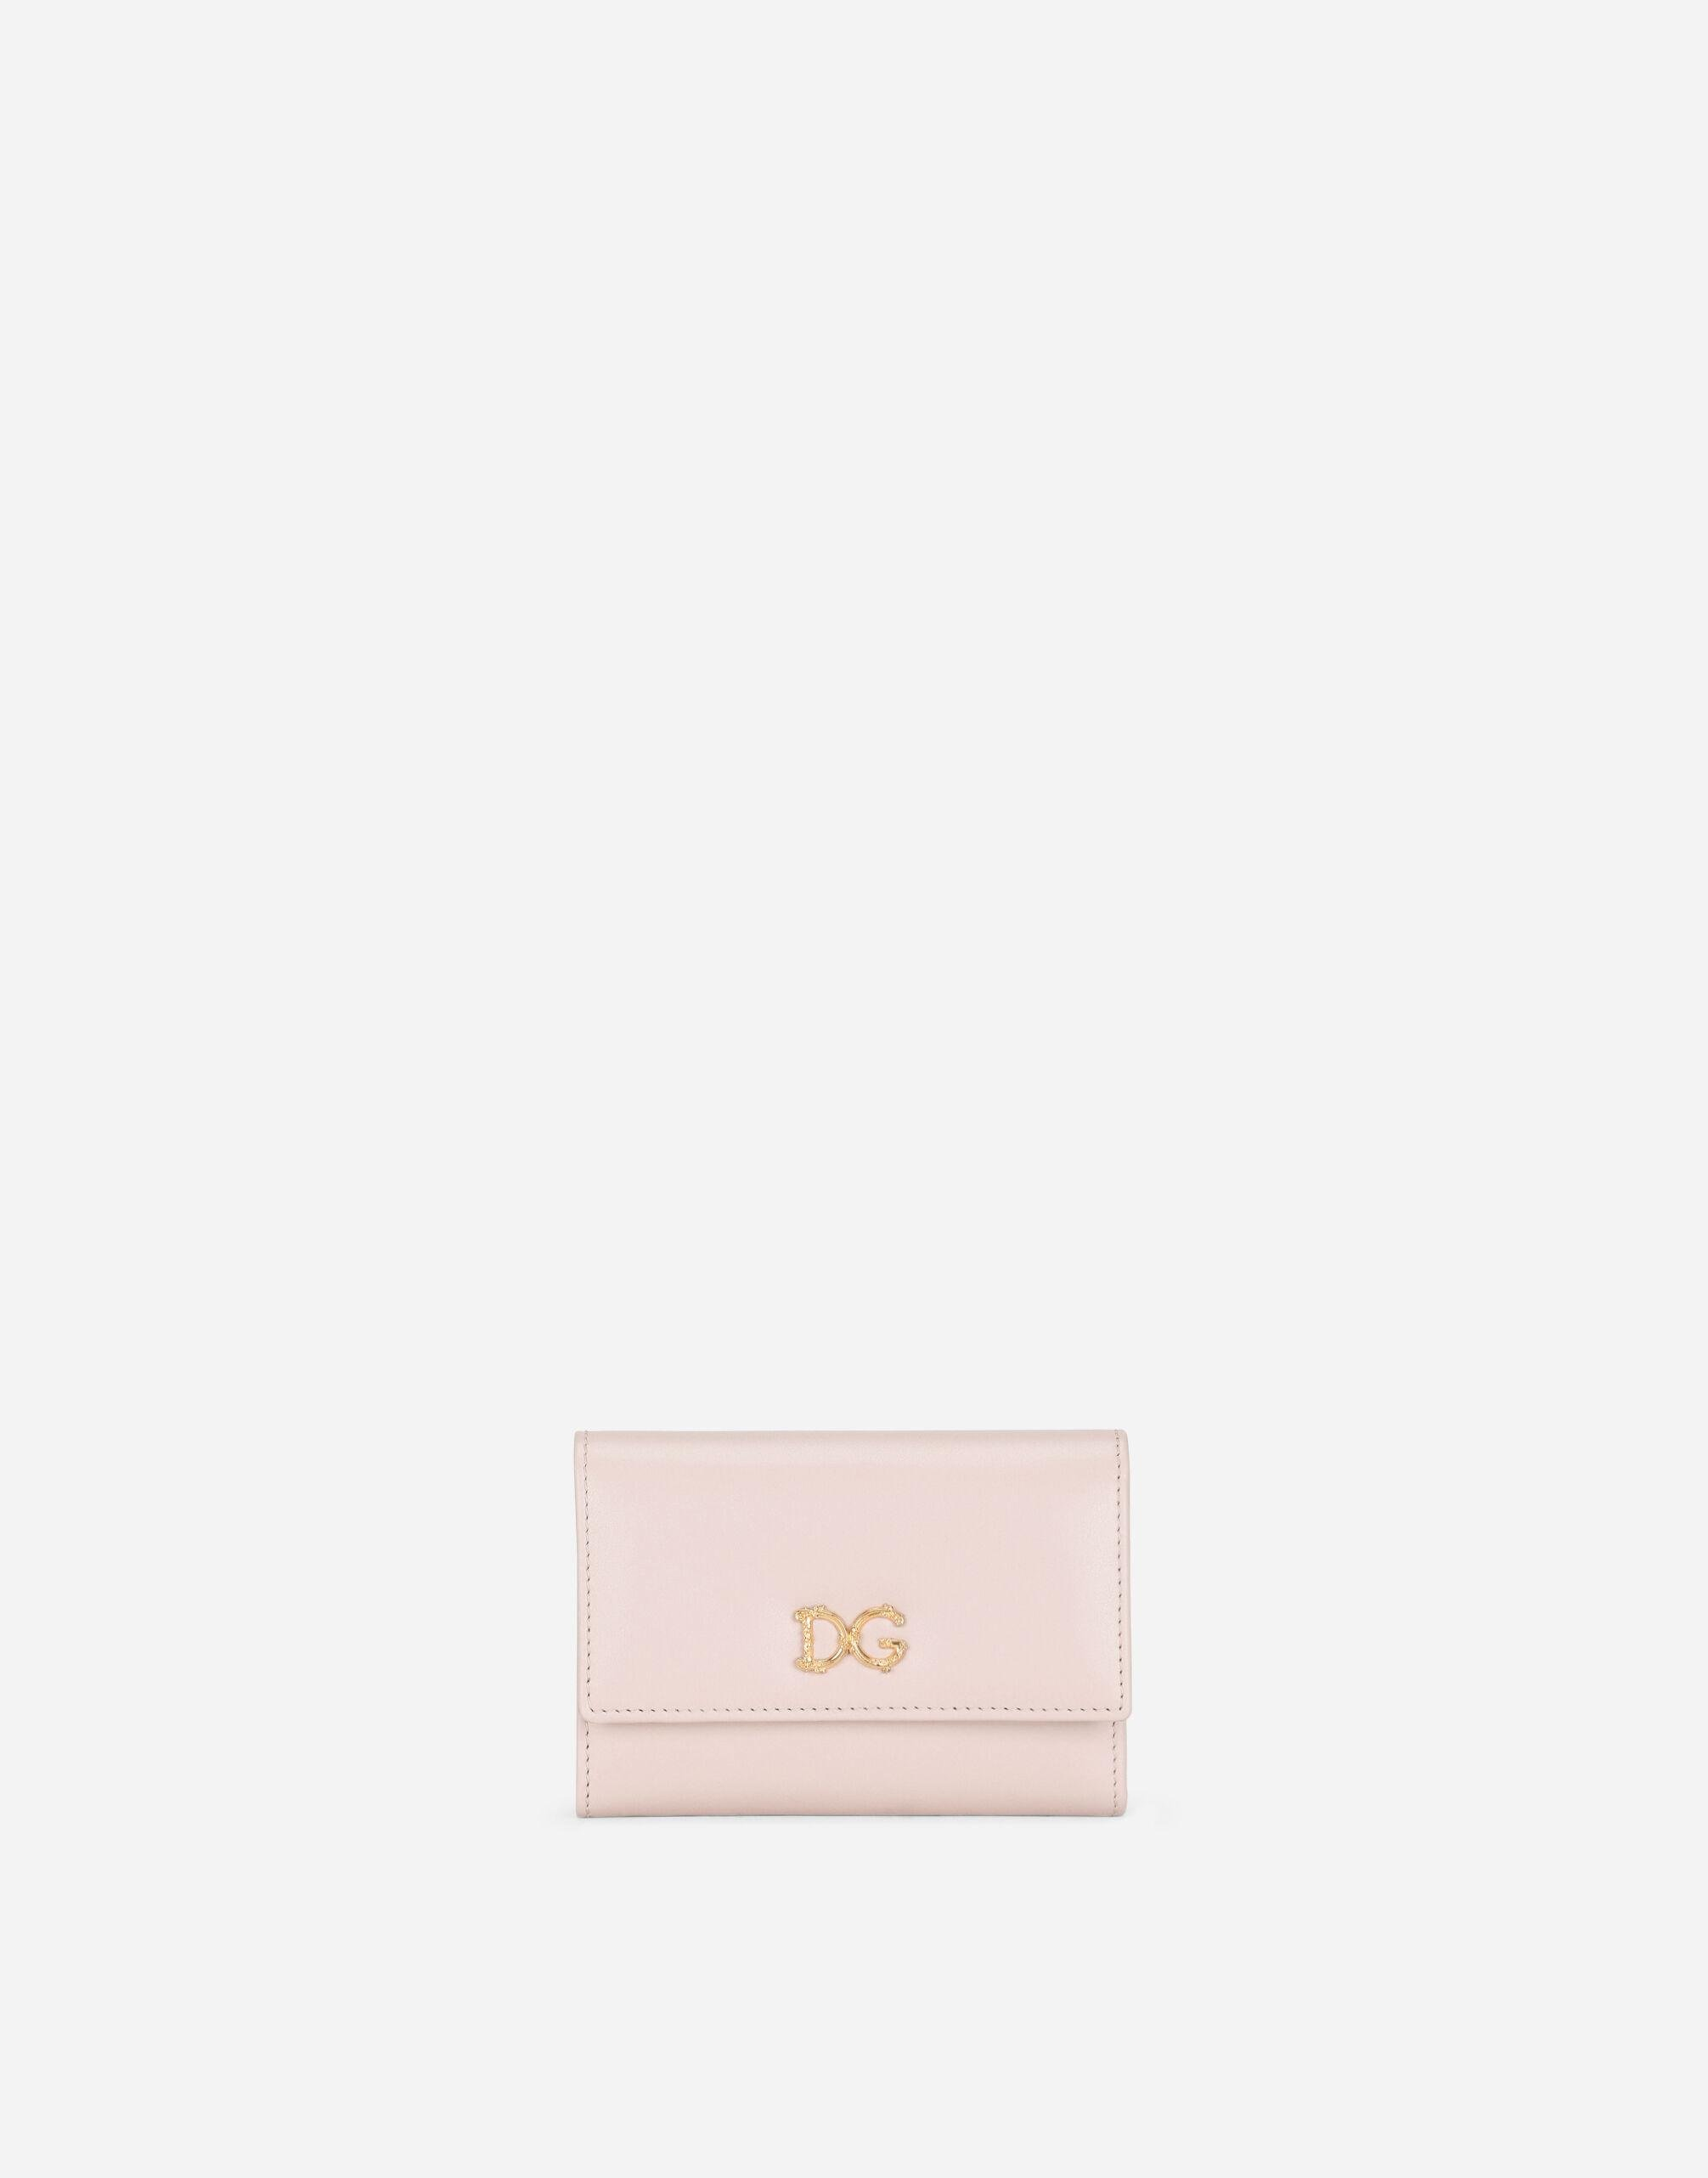 Small calfskin continental wallet with baroque GD logo